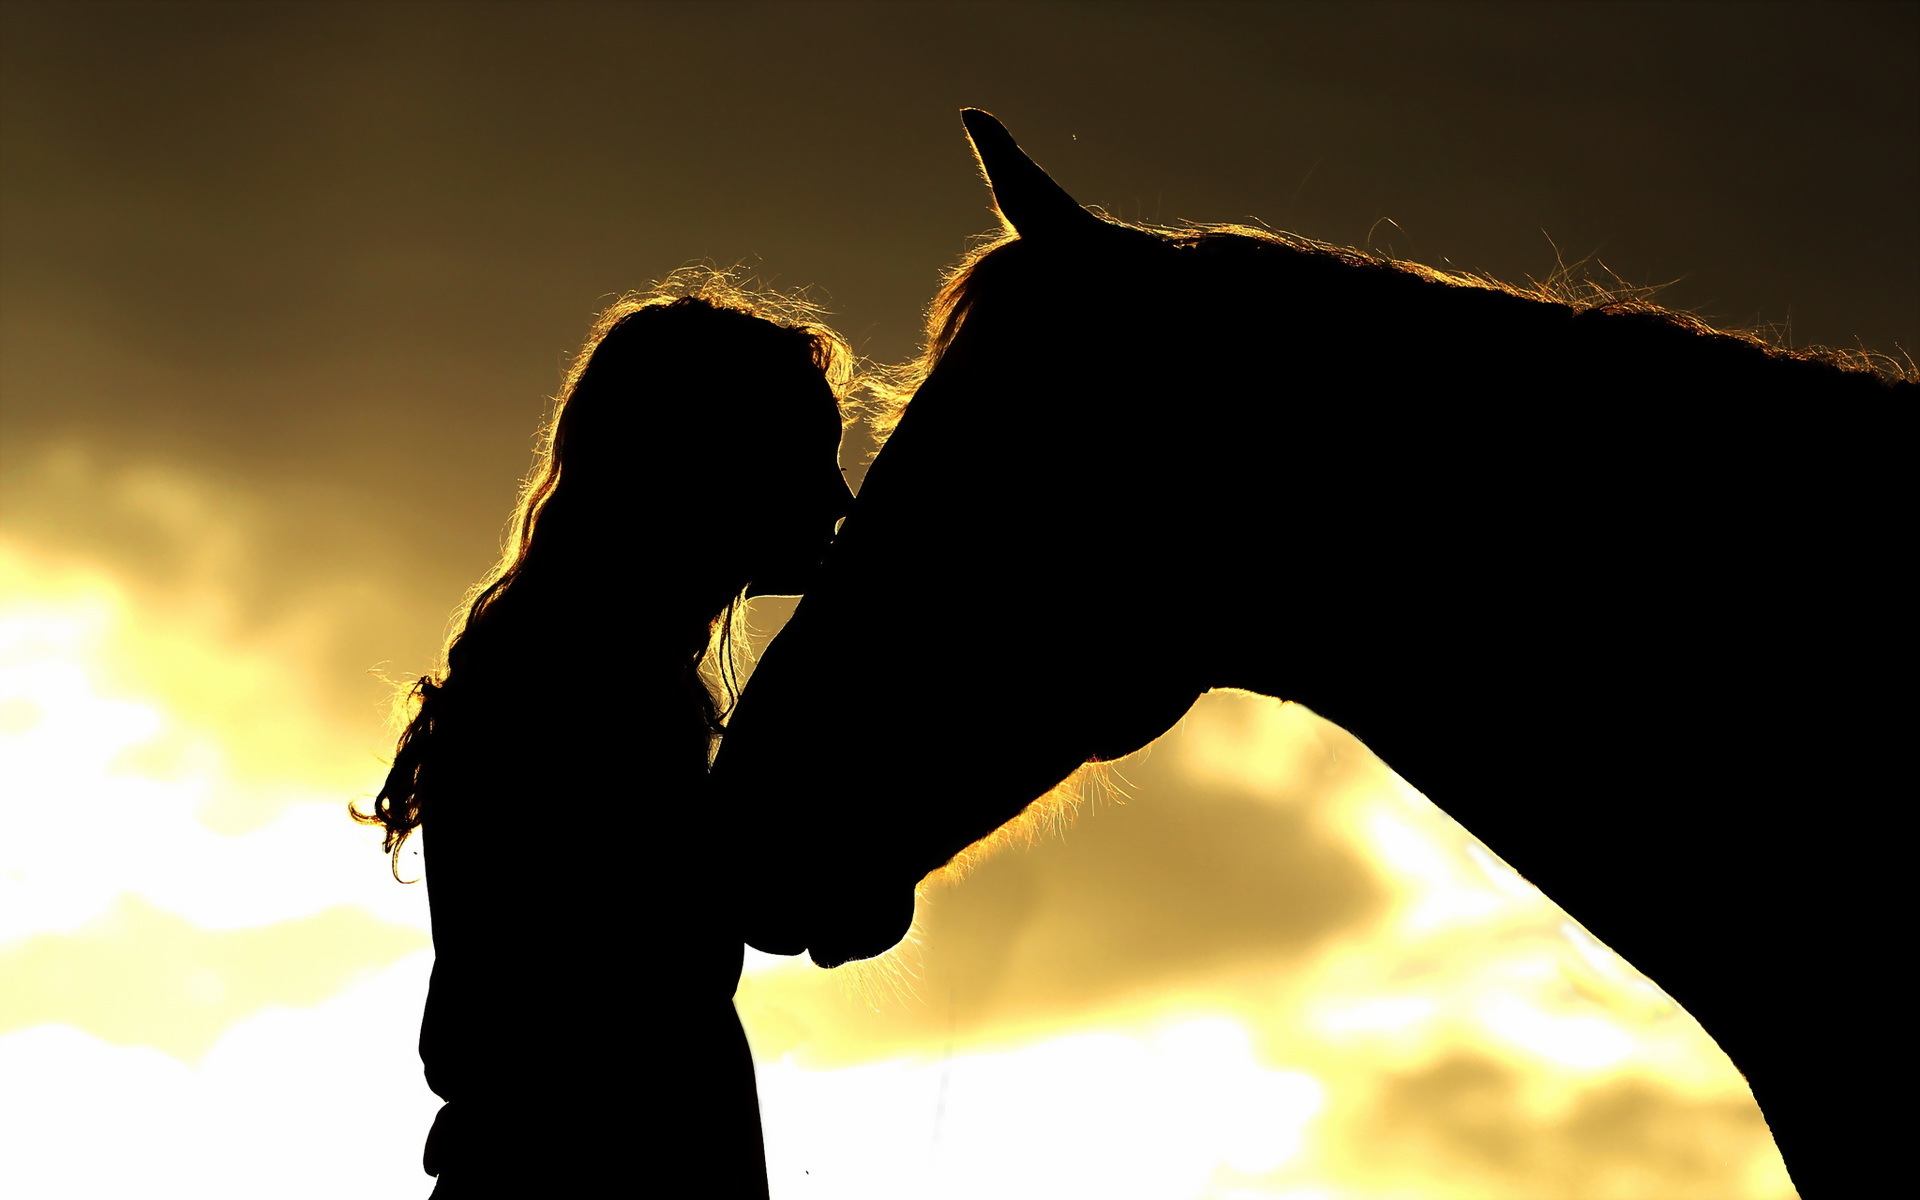 Wallpaper girl horse silhouettes wallpapers mood   download 1920x1200